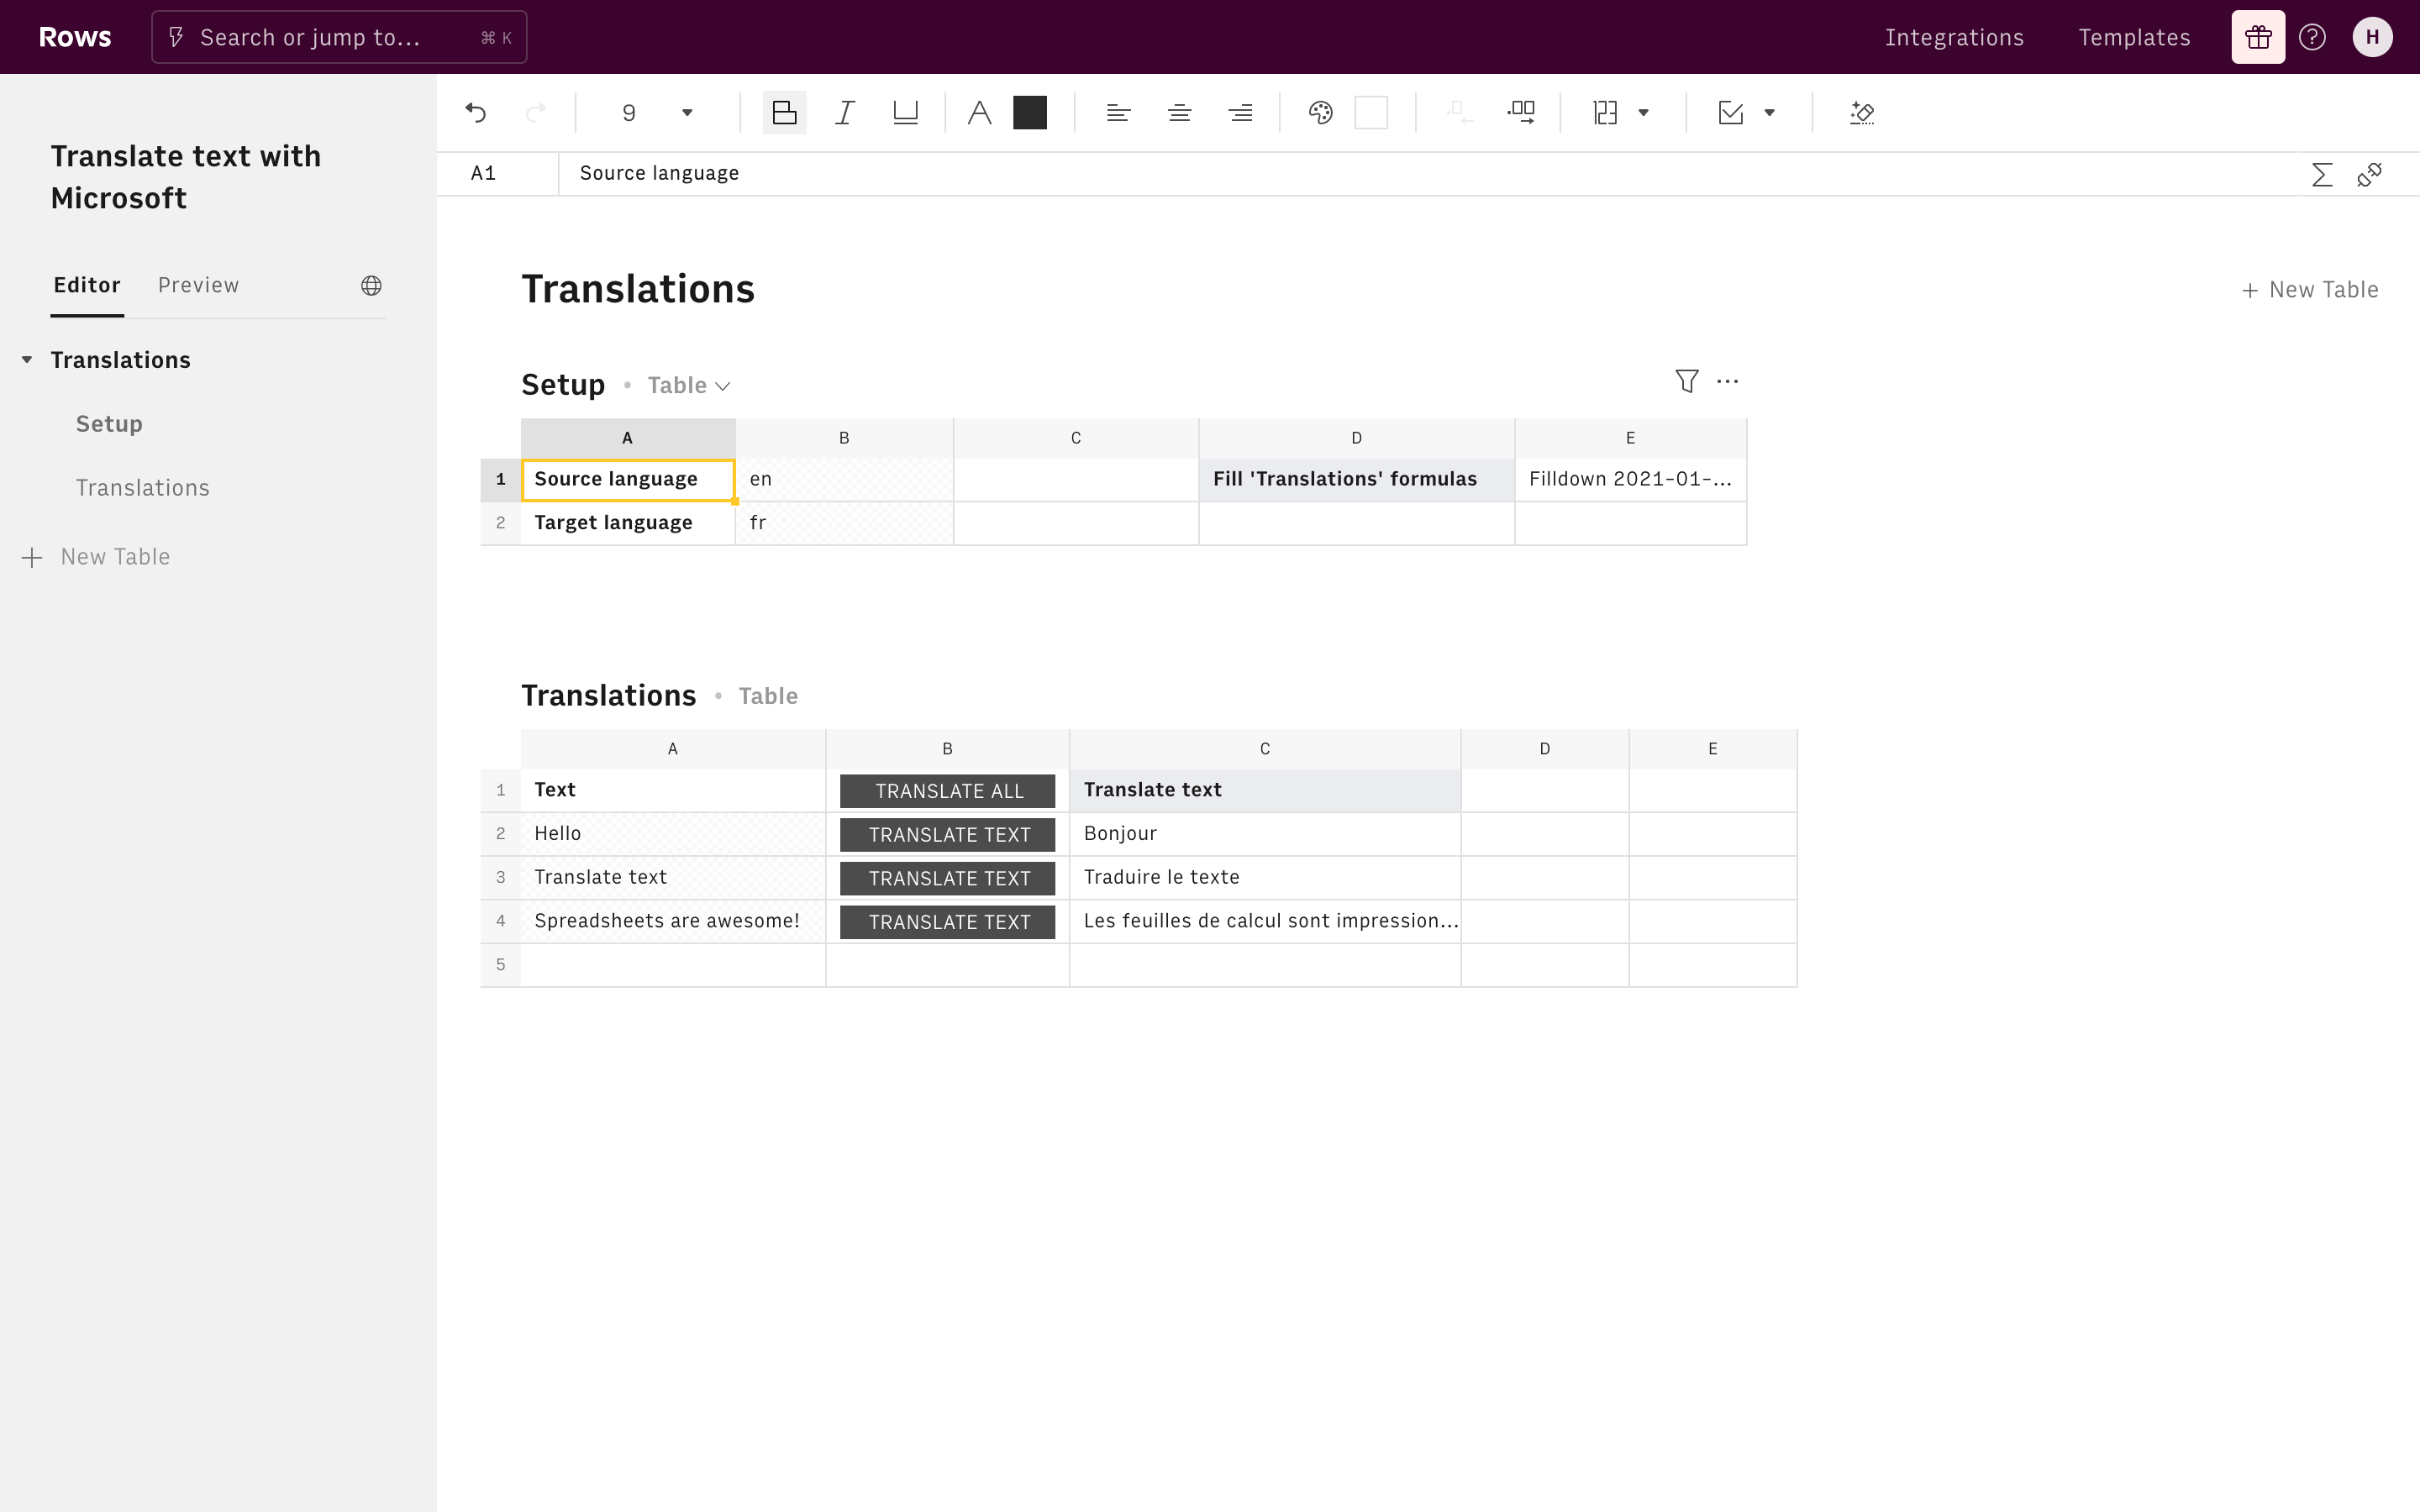 Translate text with Microsoft Editor